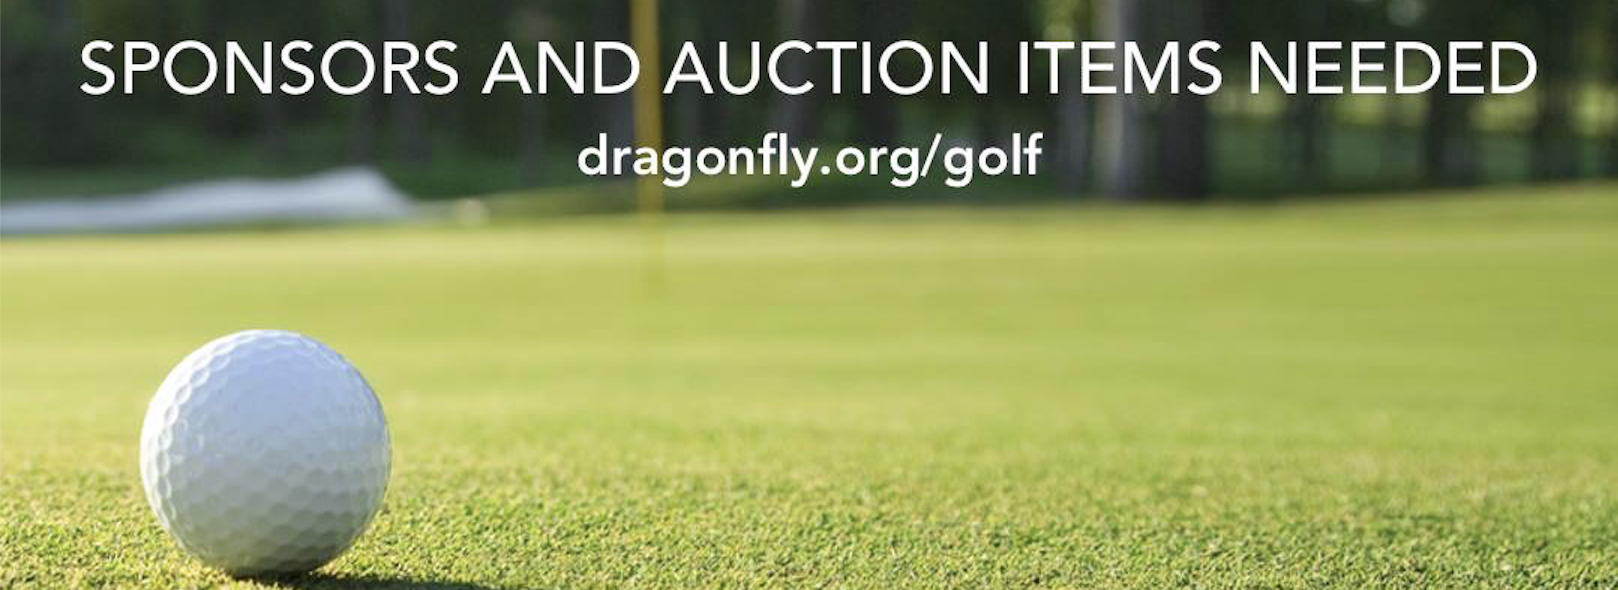 Dragonfly Golf Classic on 5/11/20